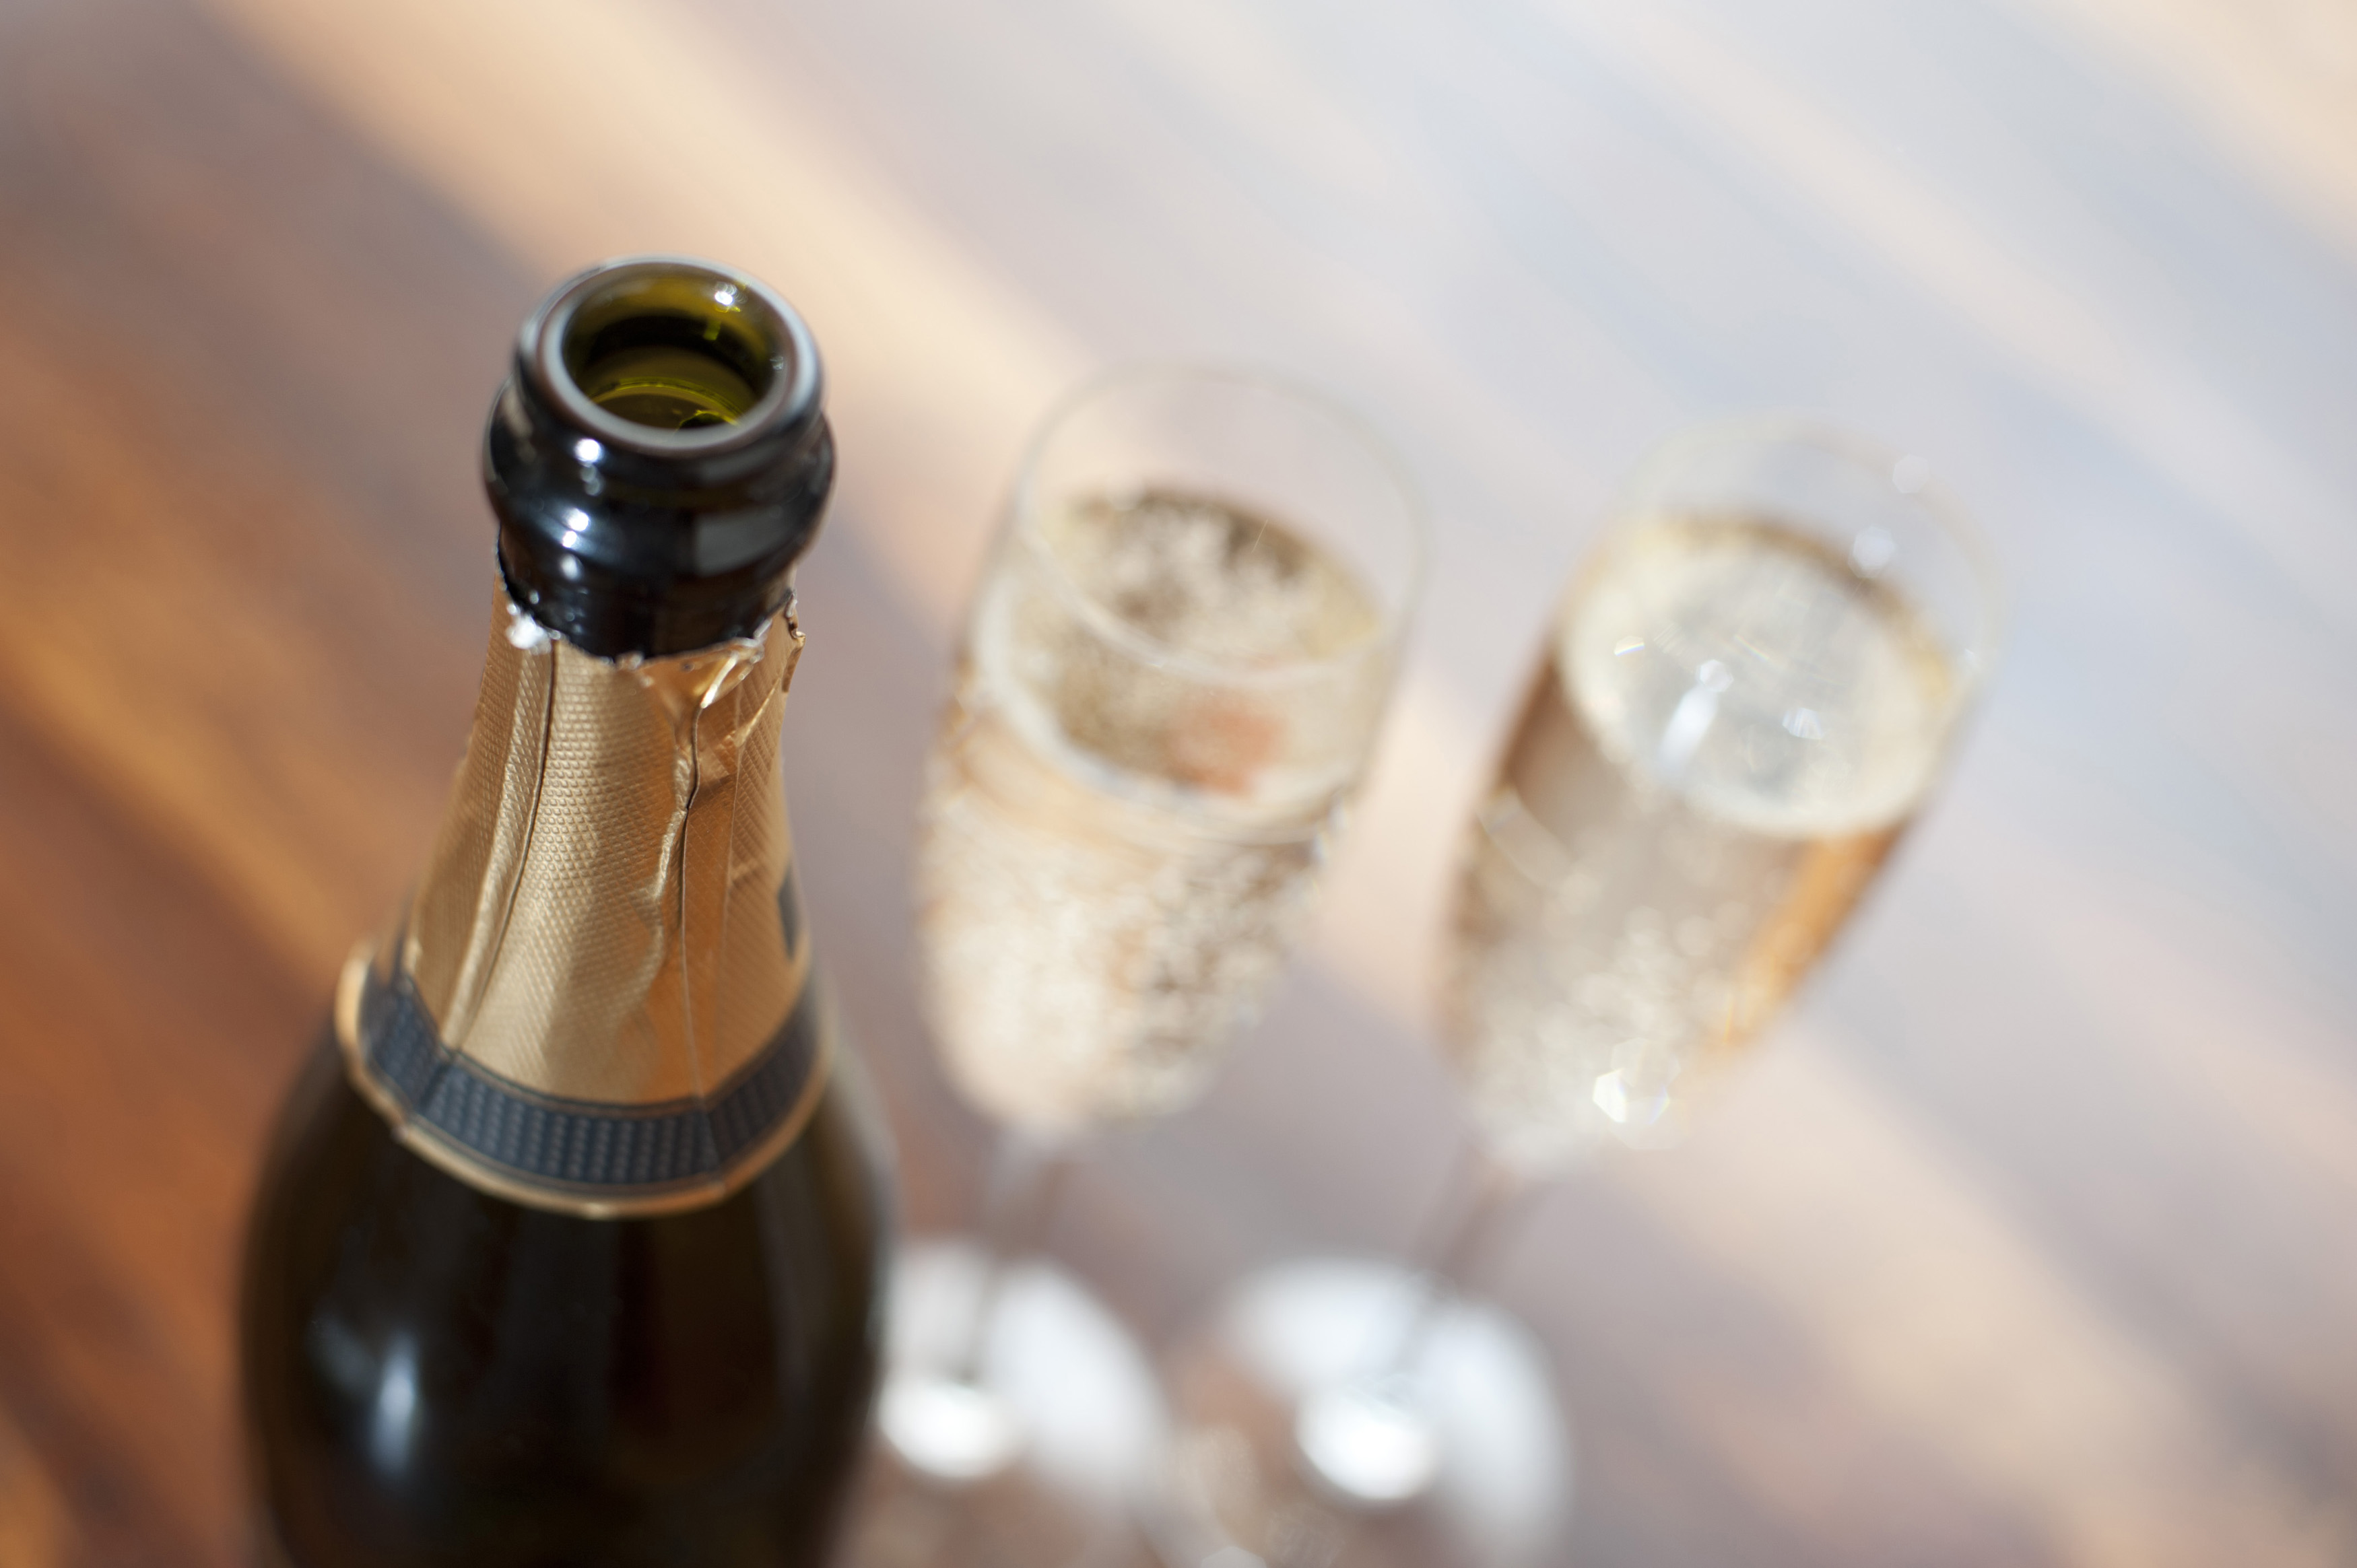 Open champagne bottle with full glasses - Free Stock Image